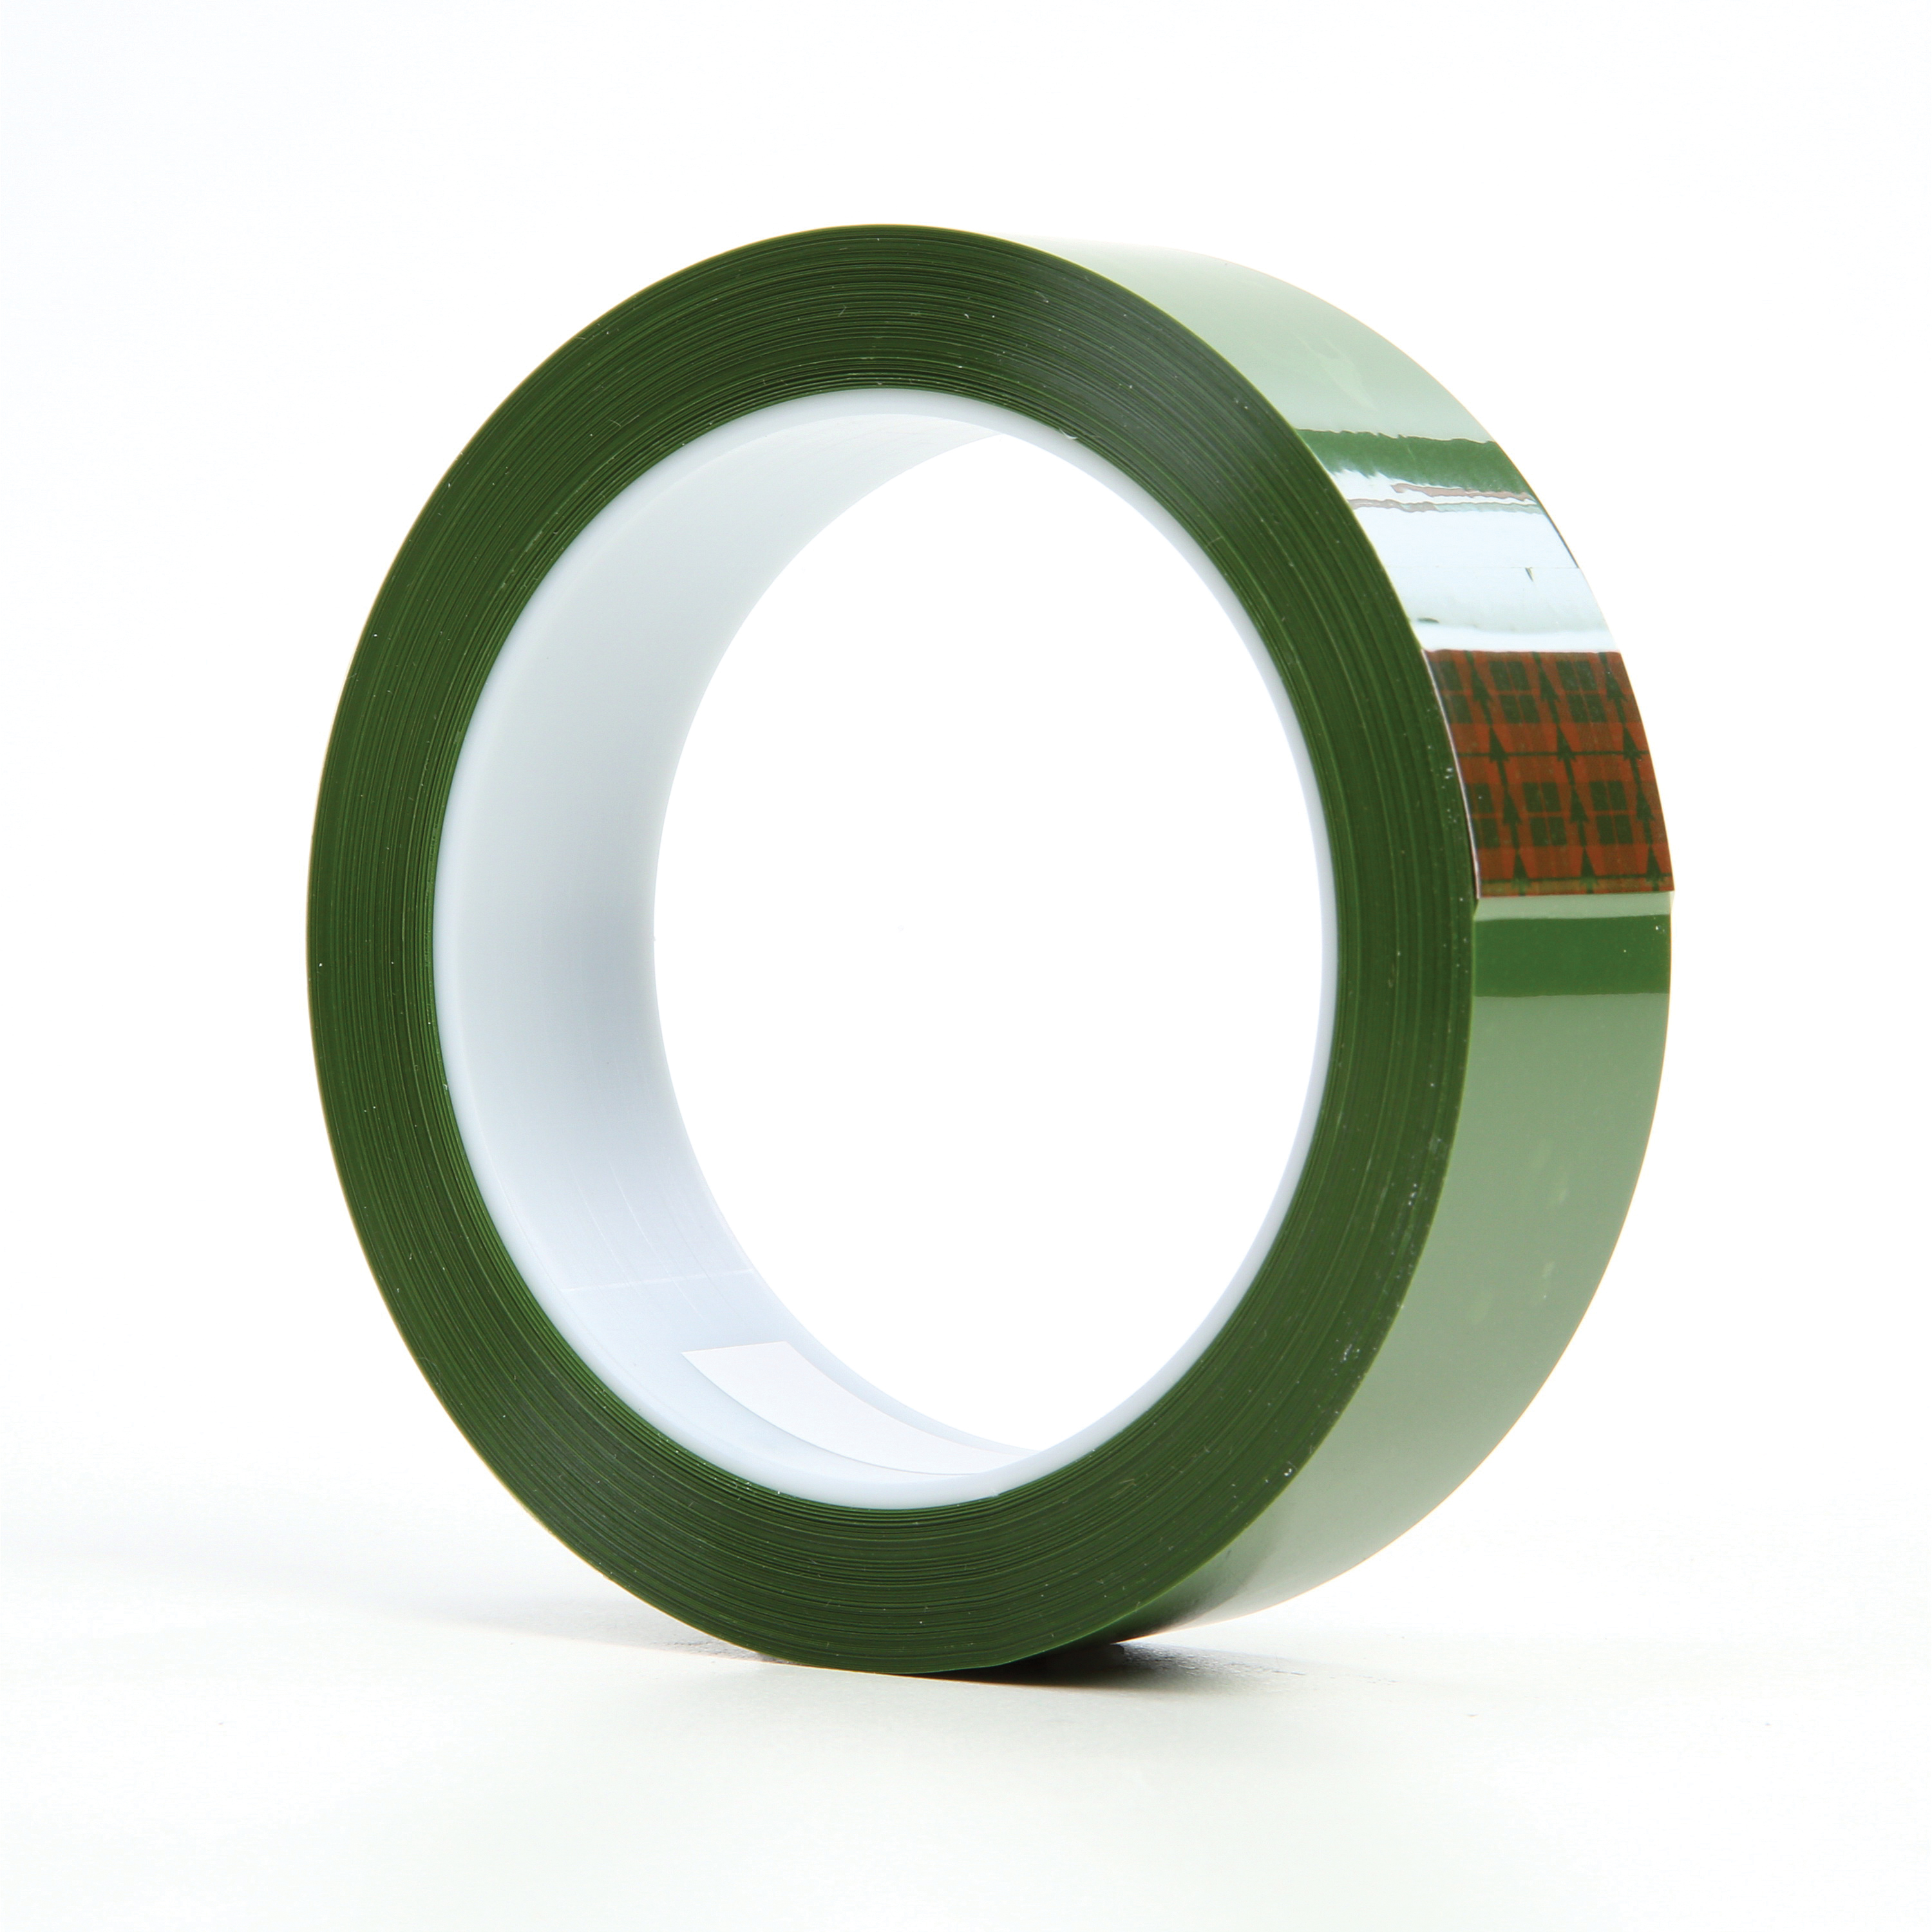 3M™ 021200-05687 Masking Tape, 72 yd L x 1 in W, 1.9 mil THK, Silicon Adhesive, Polyester Backing